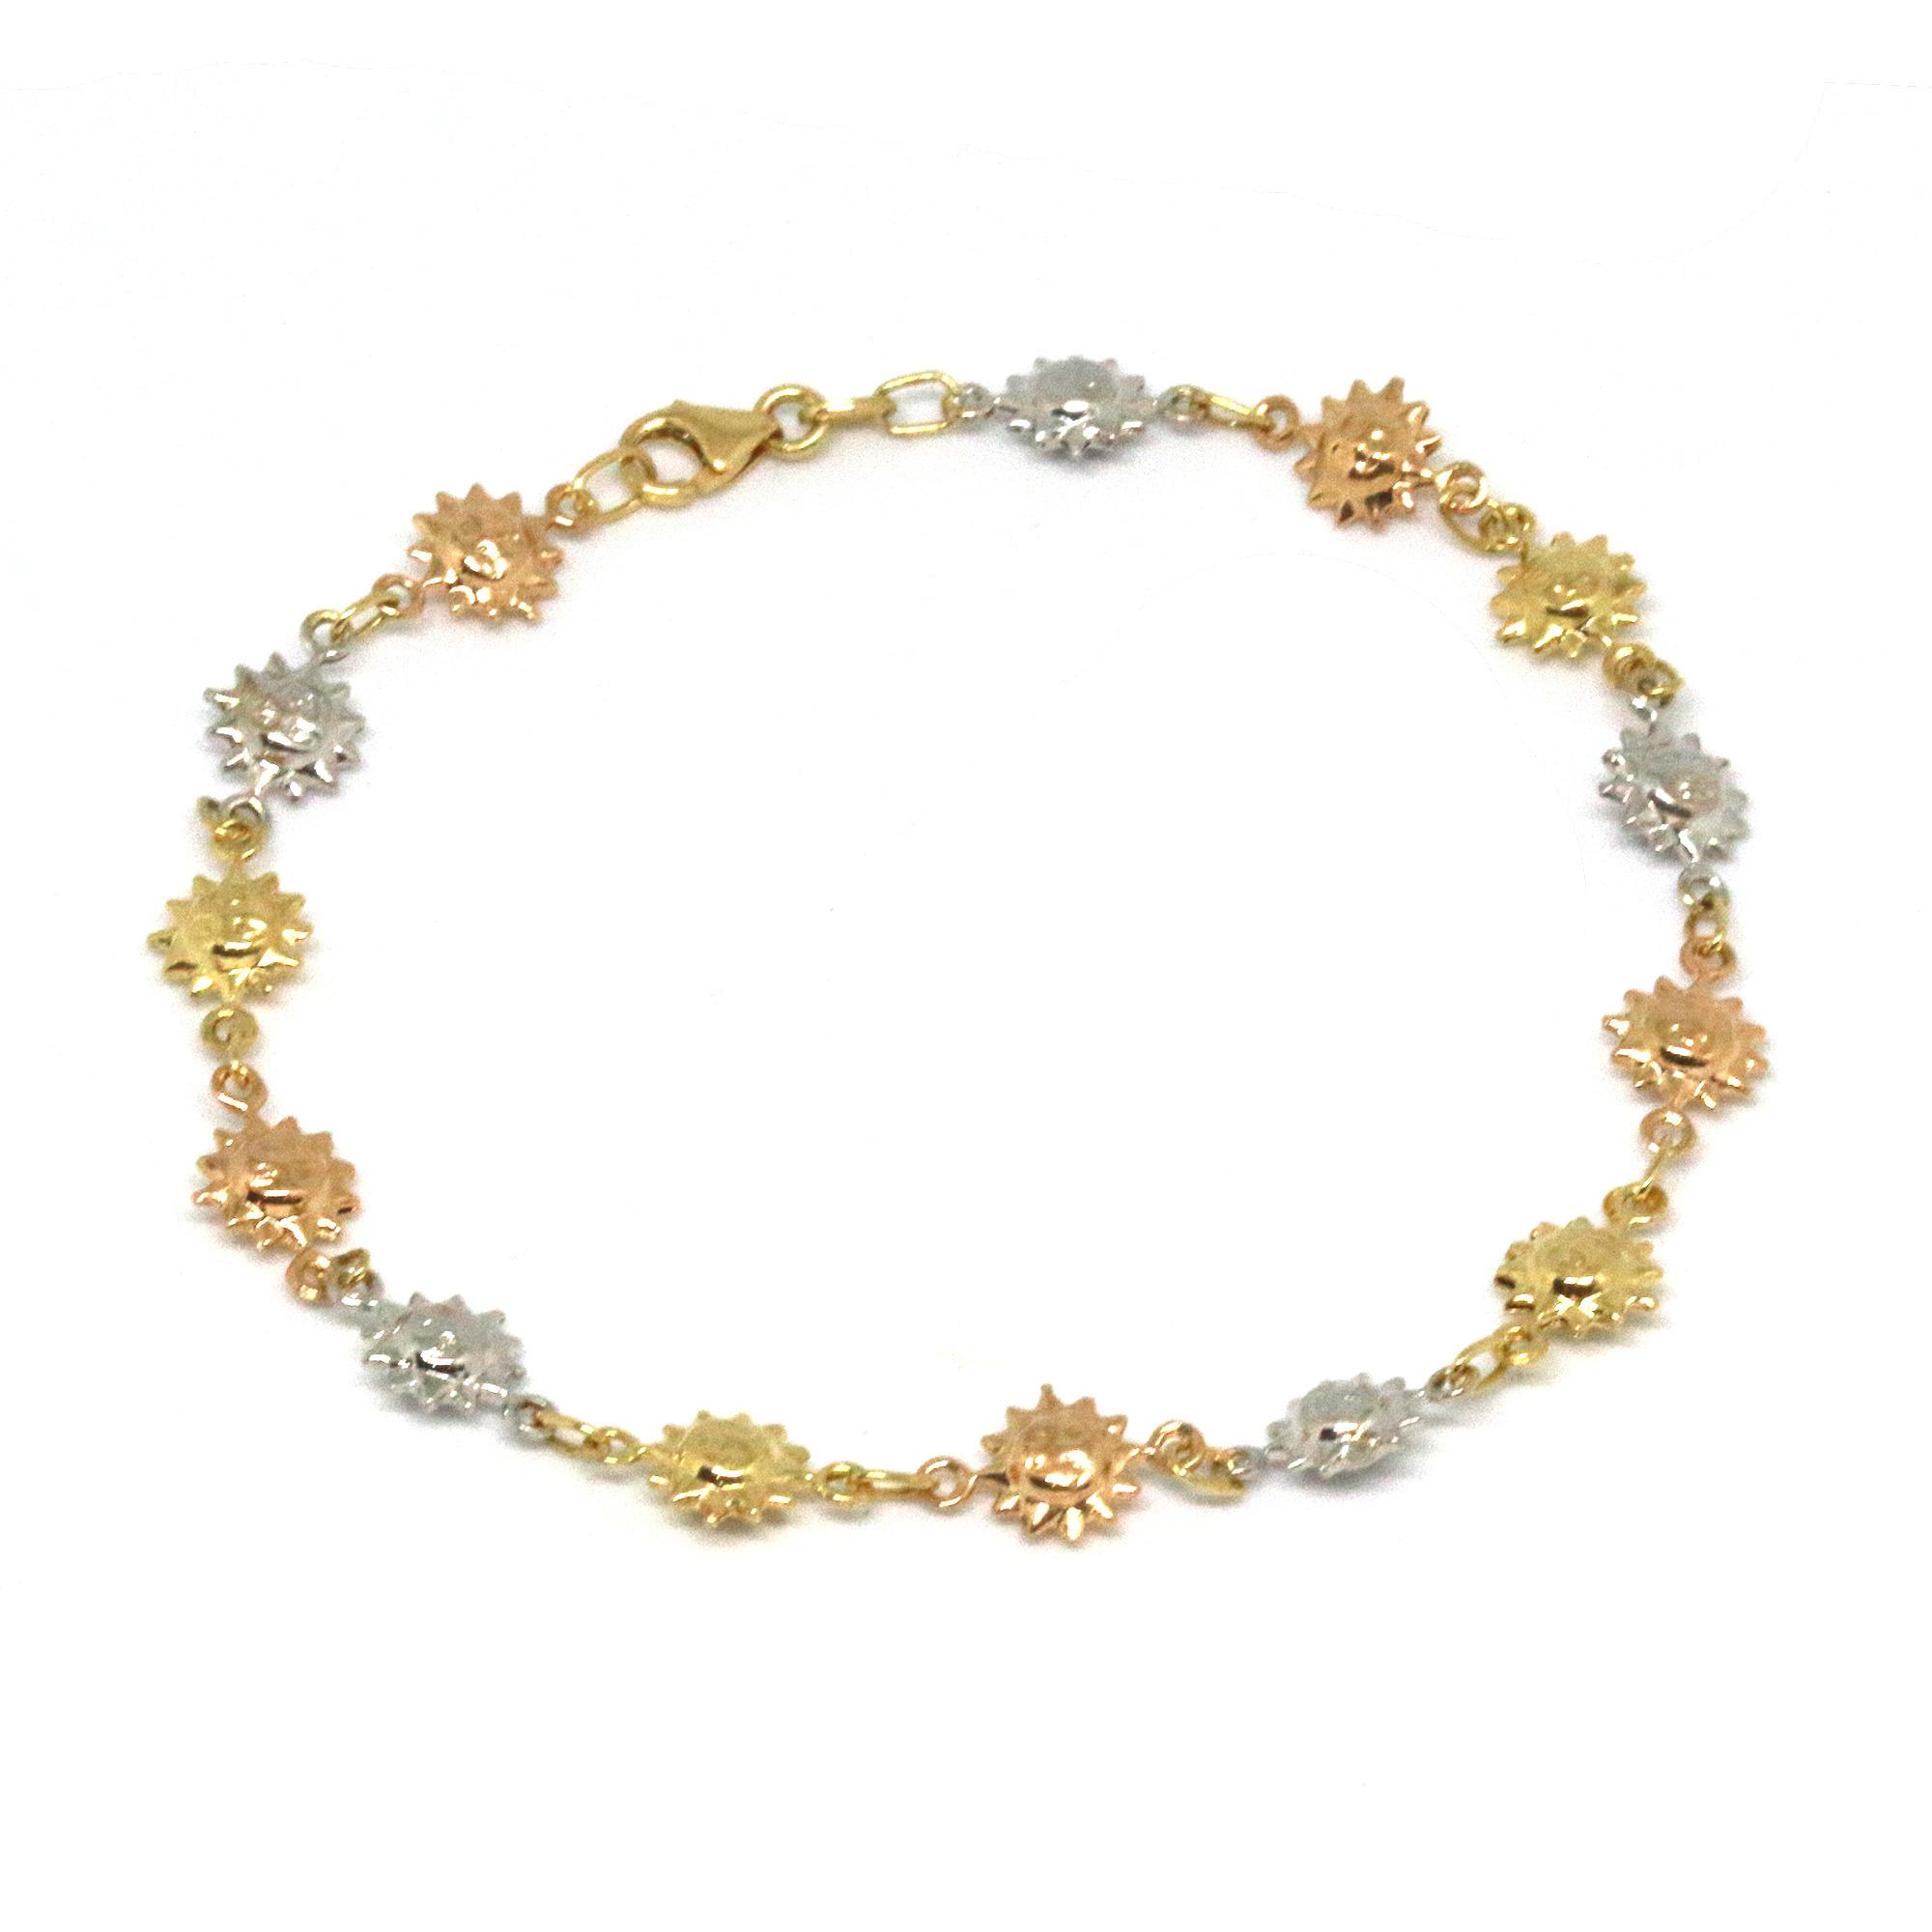 jewellery circle bestwishesjewellery honeytrend most pieces bracelet gold and by design of dainty delicate the